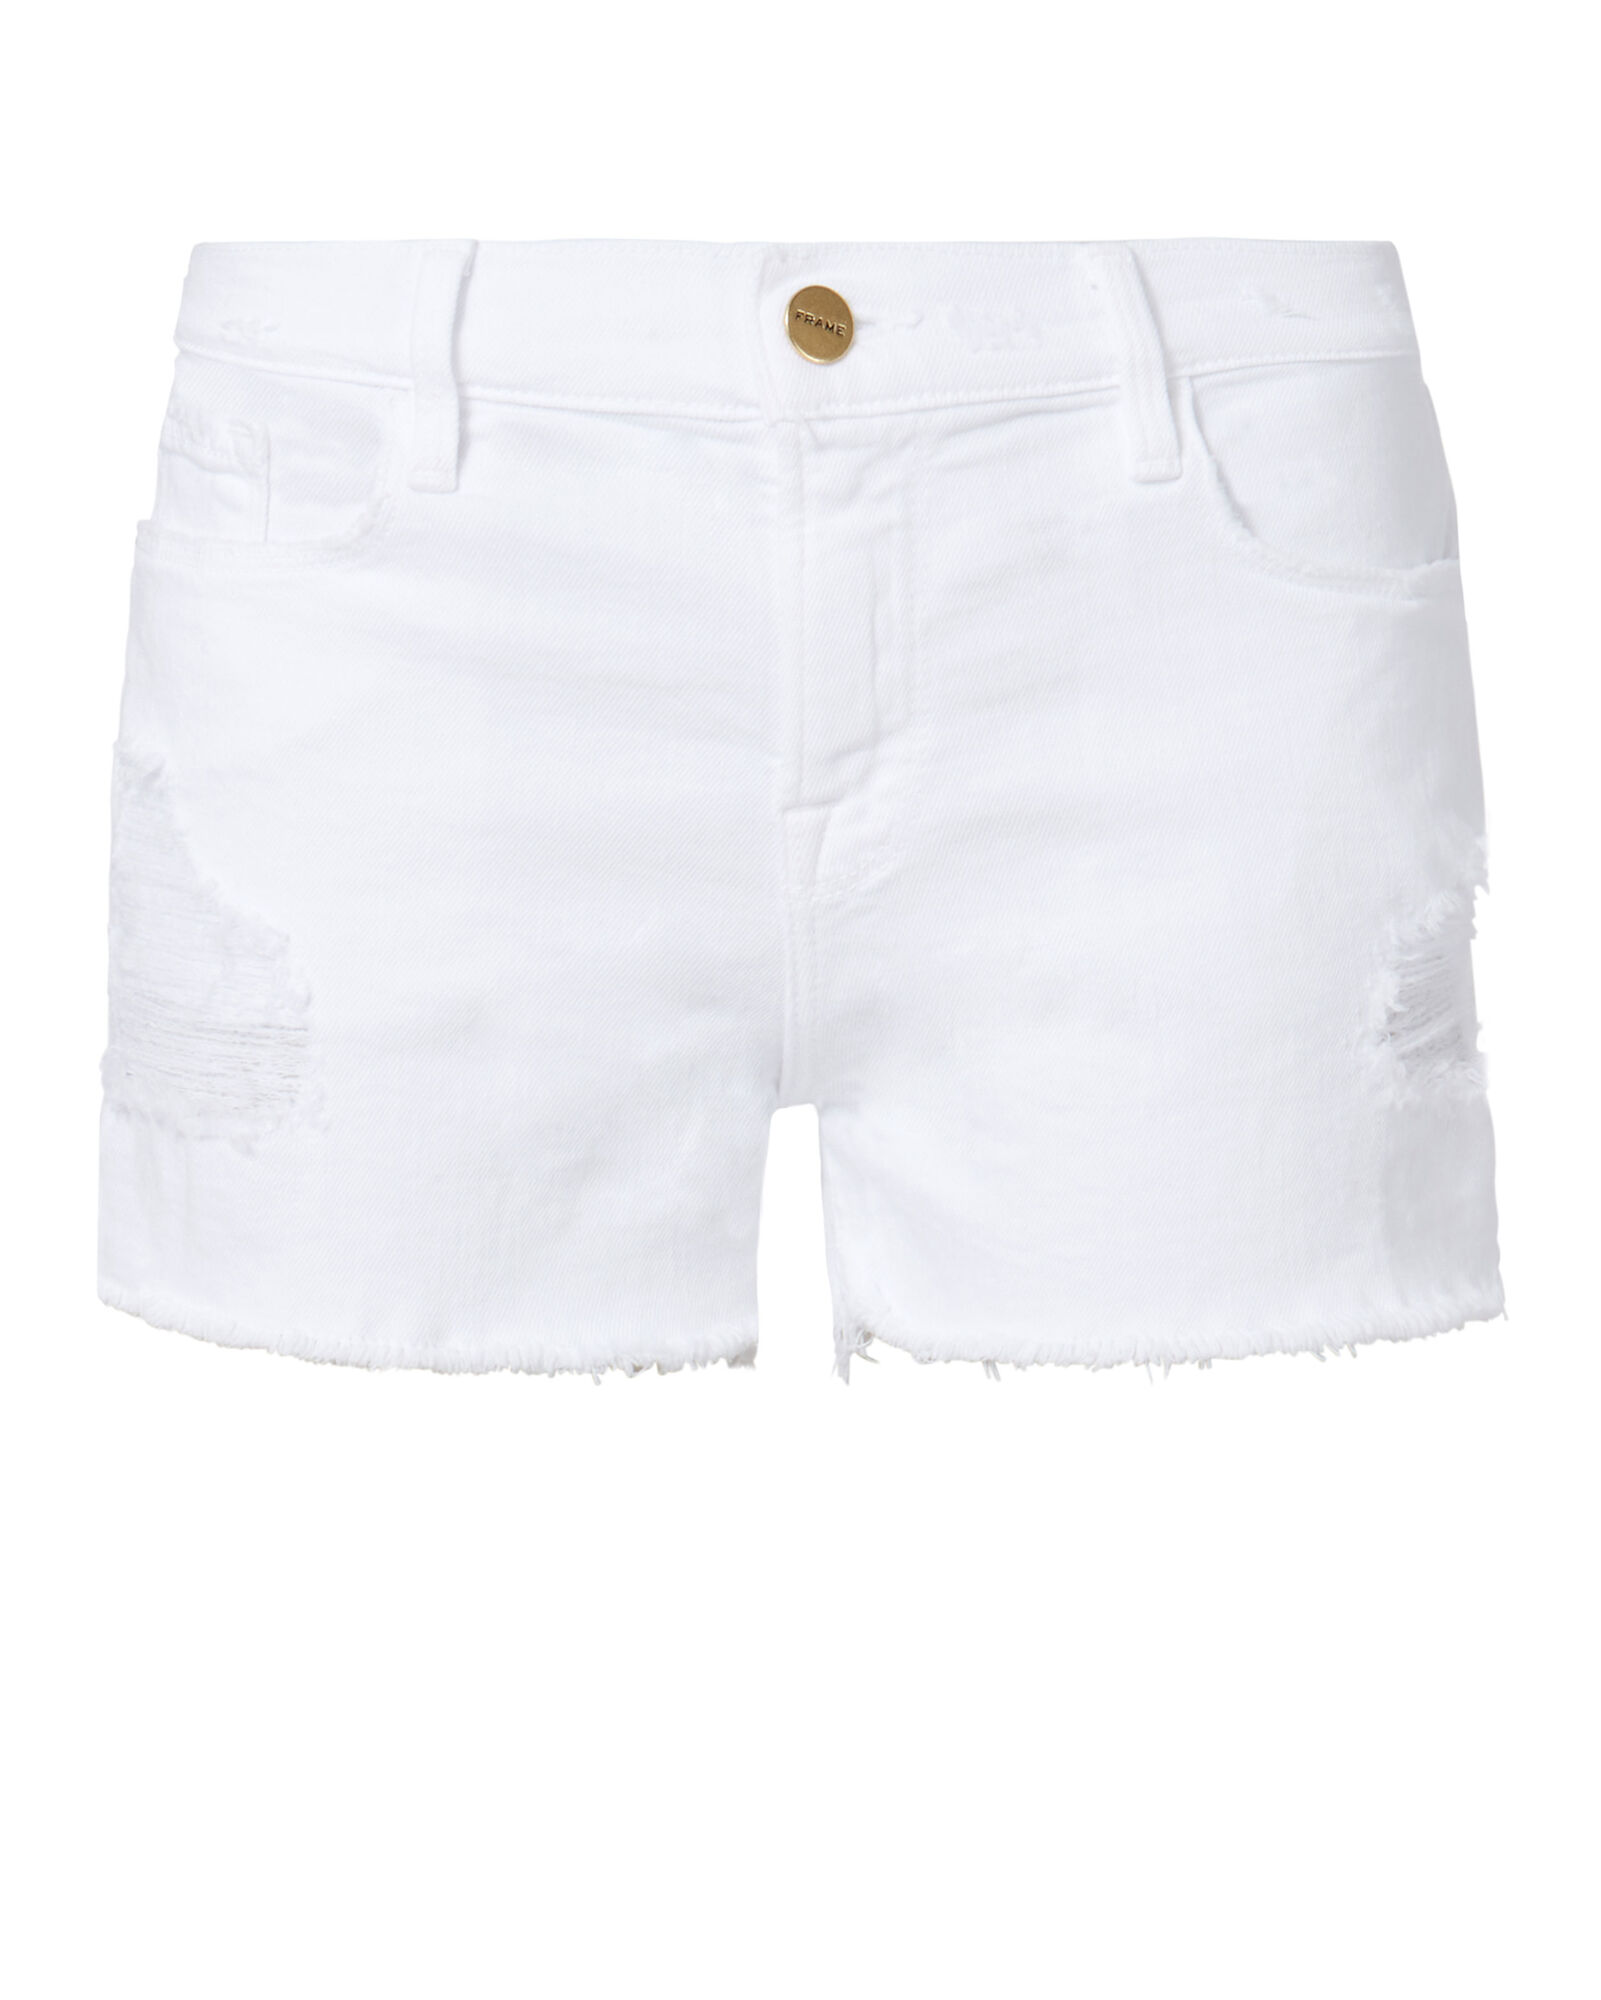 Le Cut-Off Denim Shorts, WHITE DENIM, hi-res